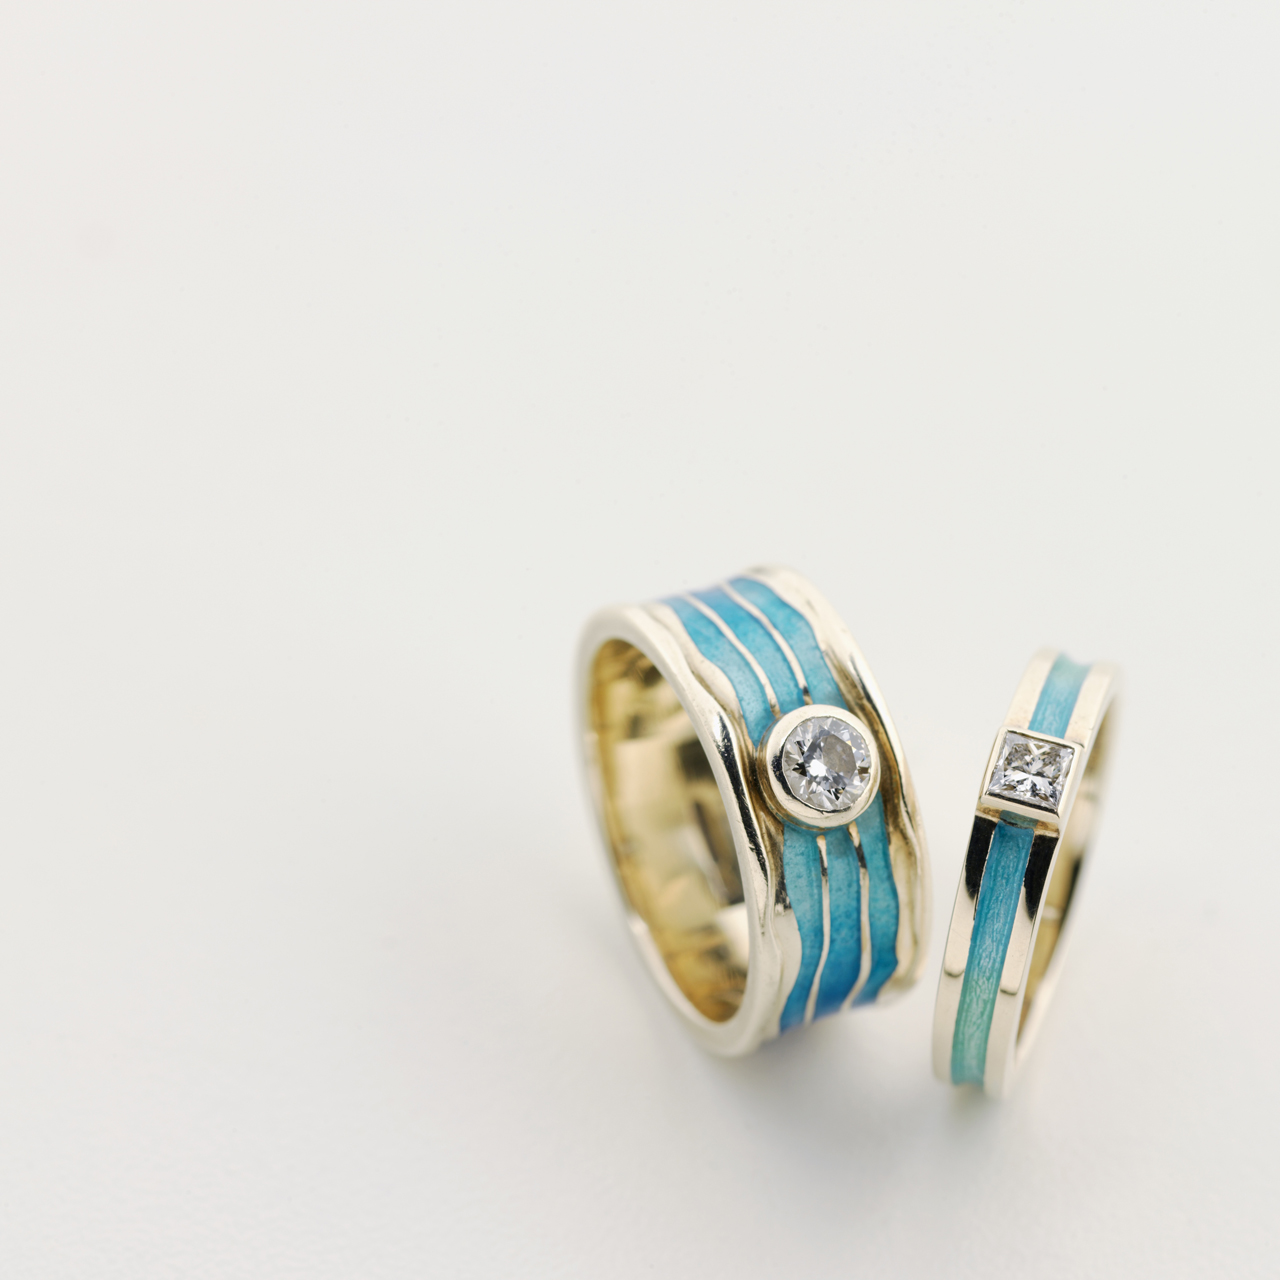 Turquoise, Enamel and Diamond Rings />               </div>               <div class=